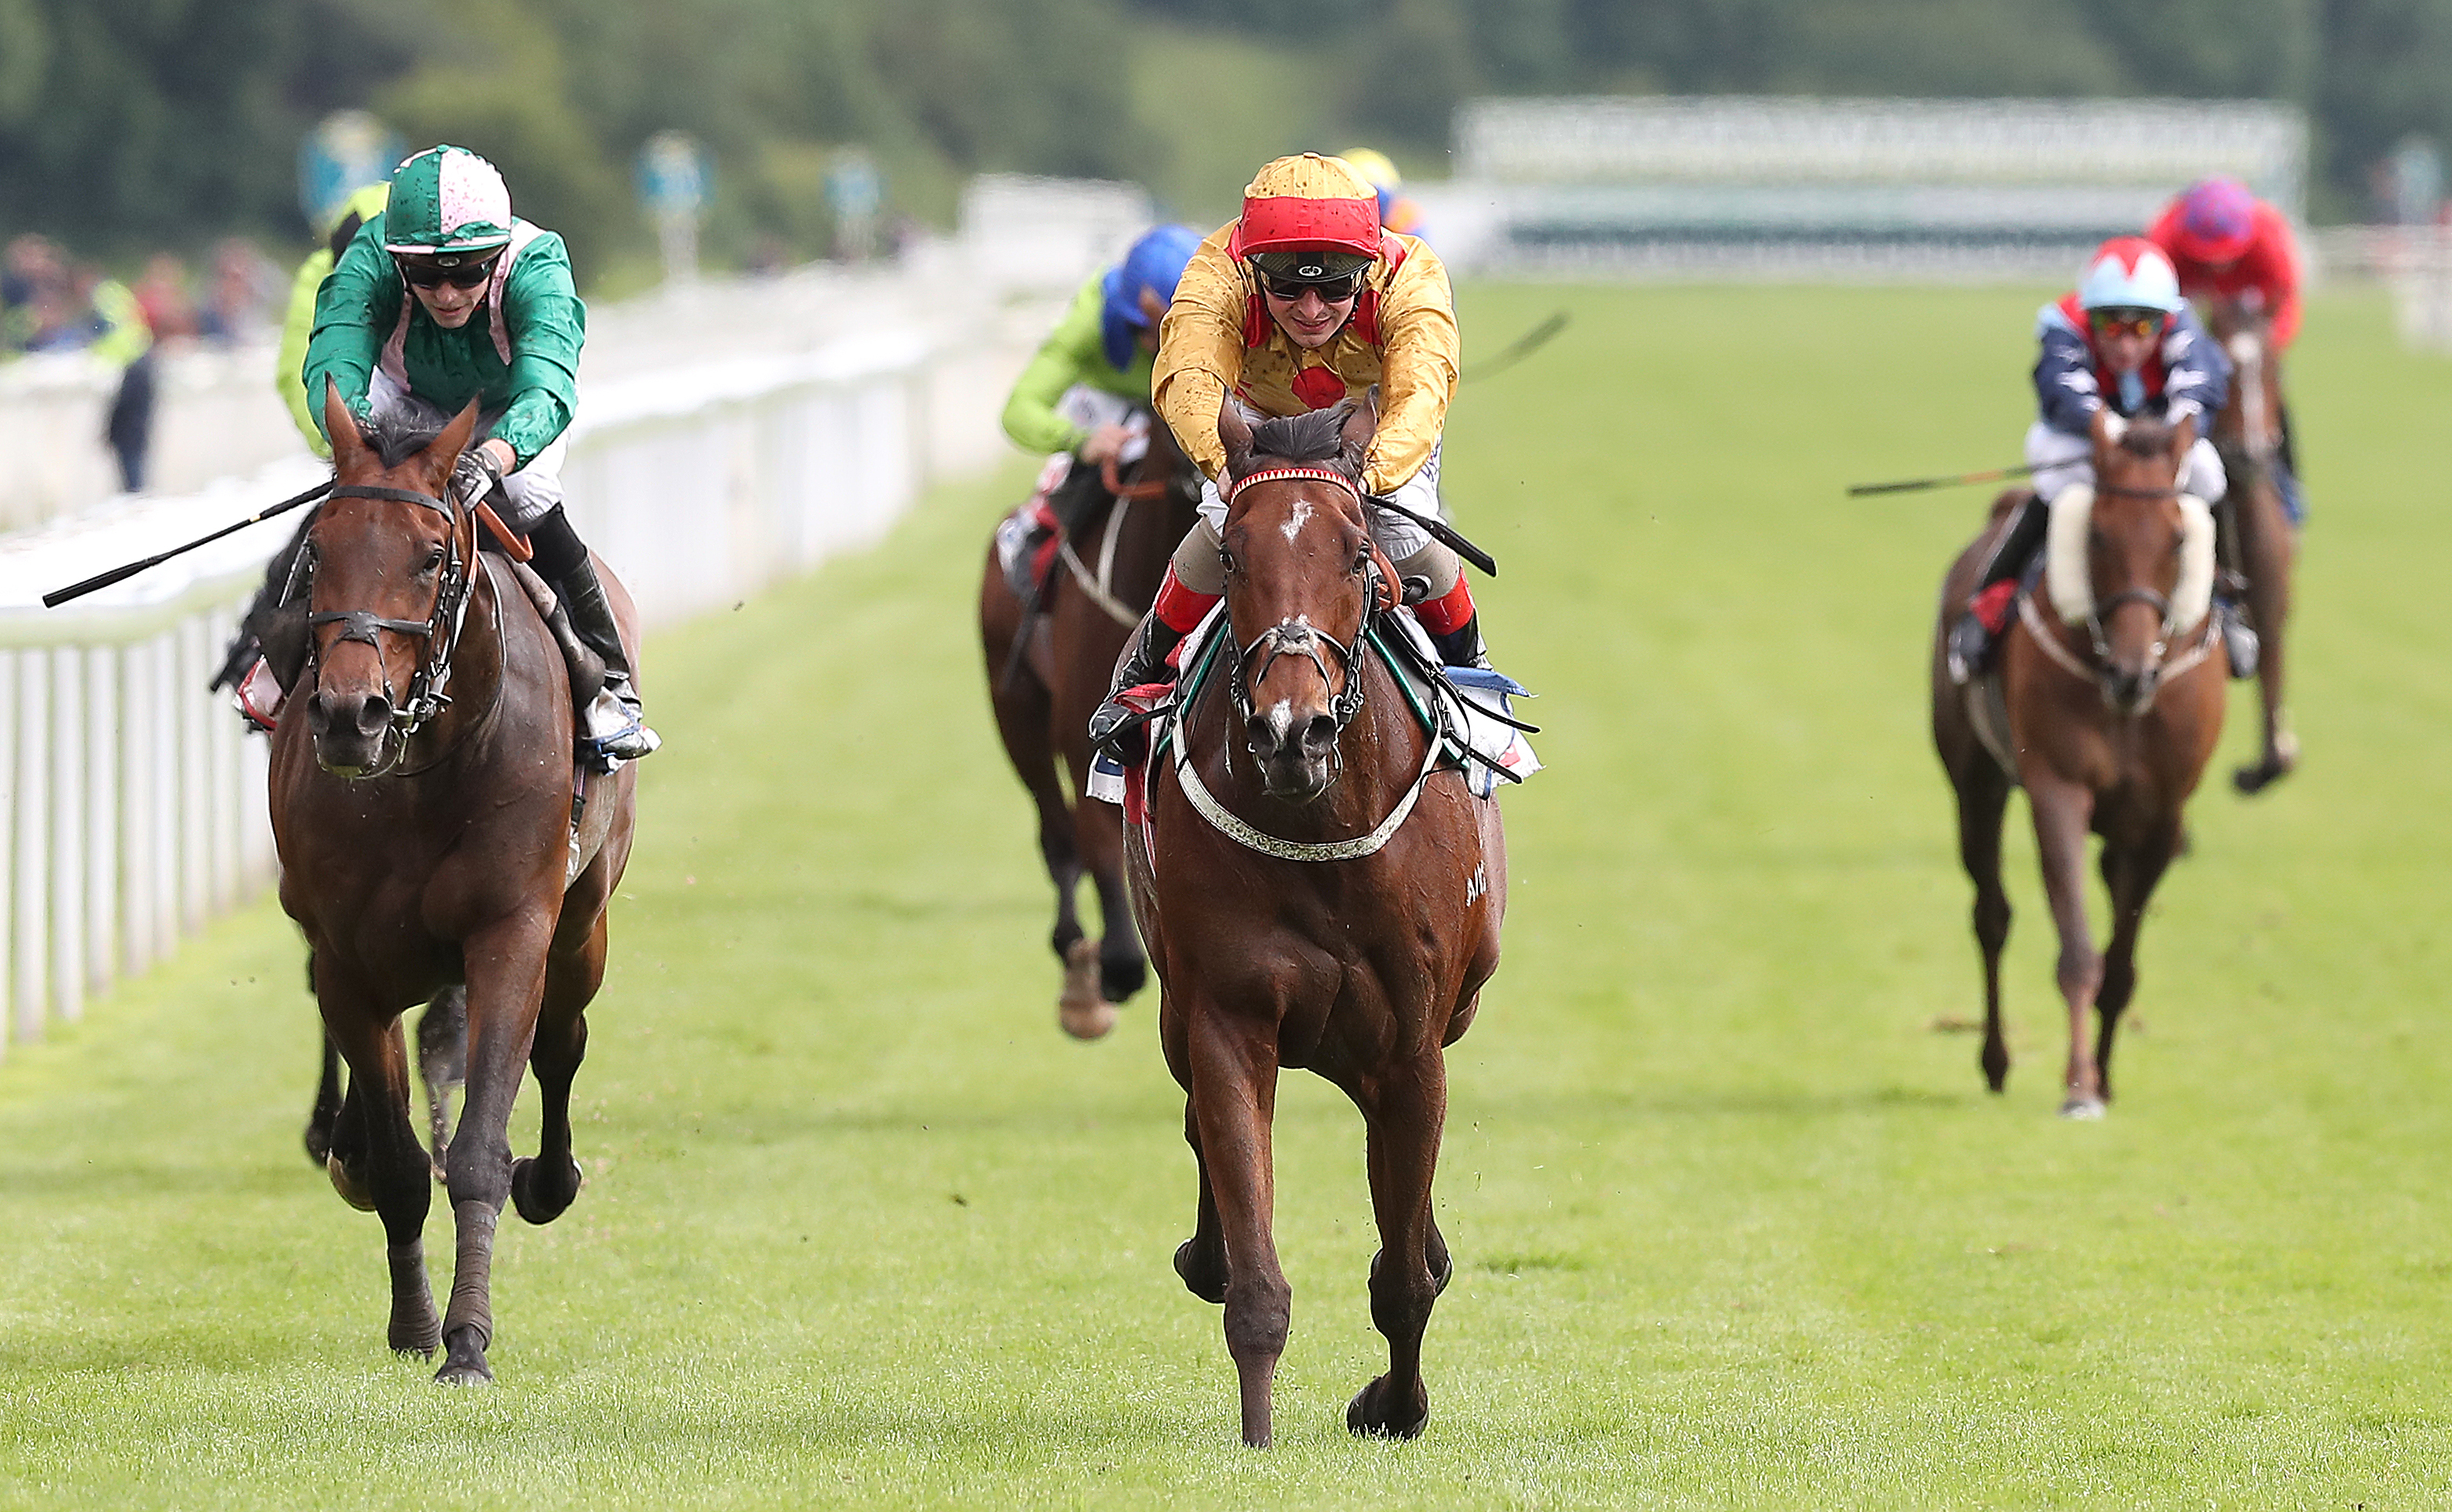 Gold Mount impressed in victory at York